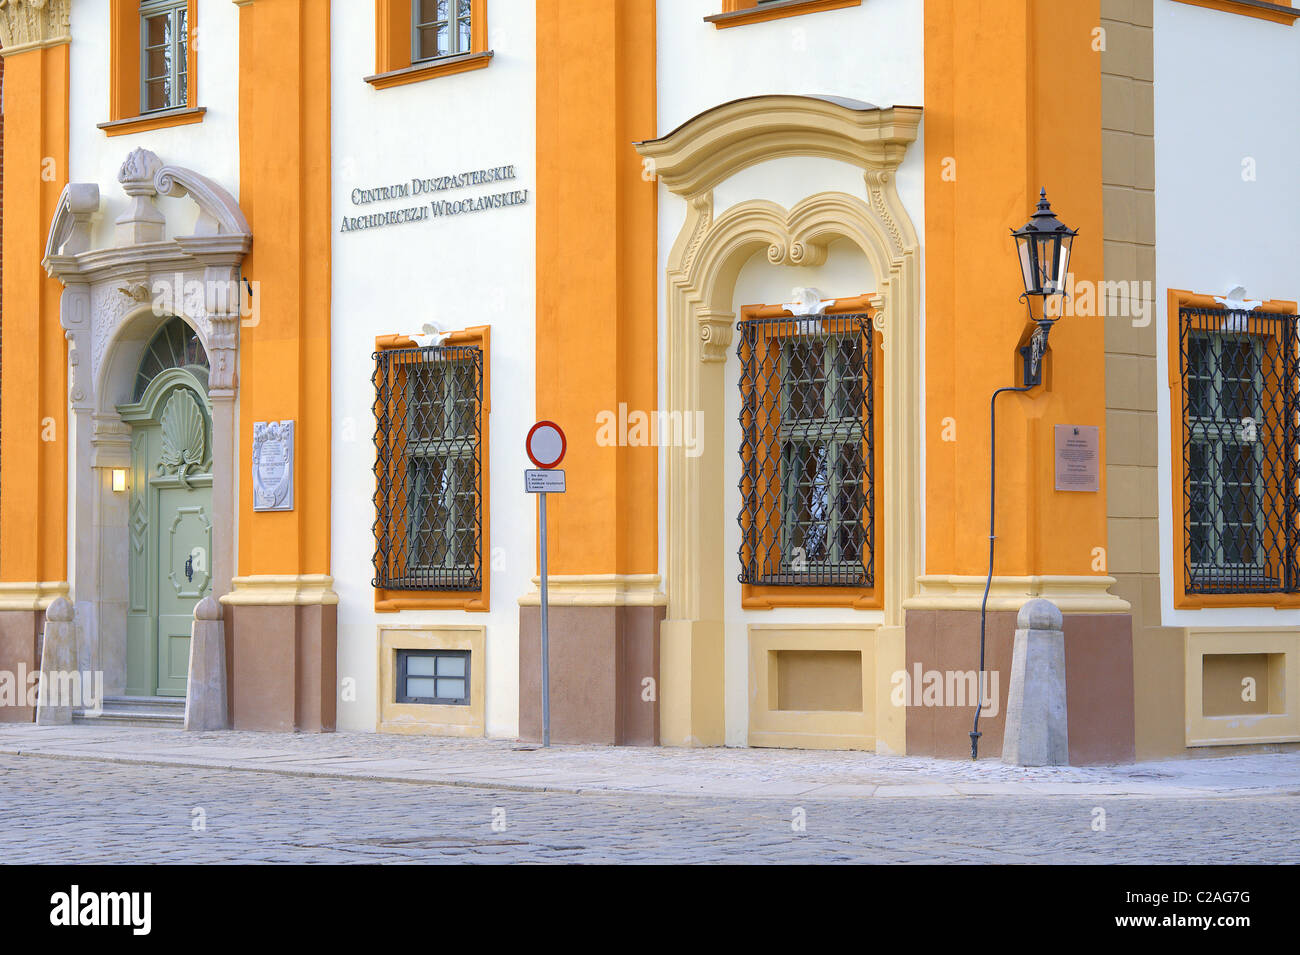 Pastoral office Archdiocese of  Wroclaw barocco building - Stock Image